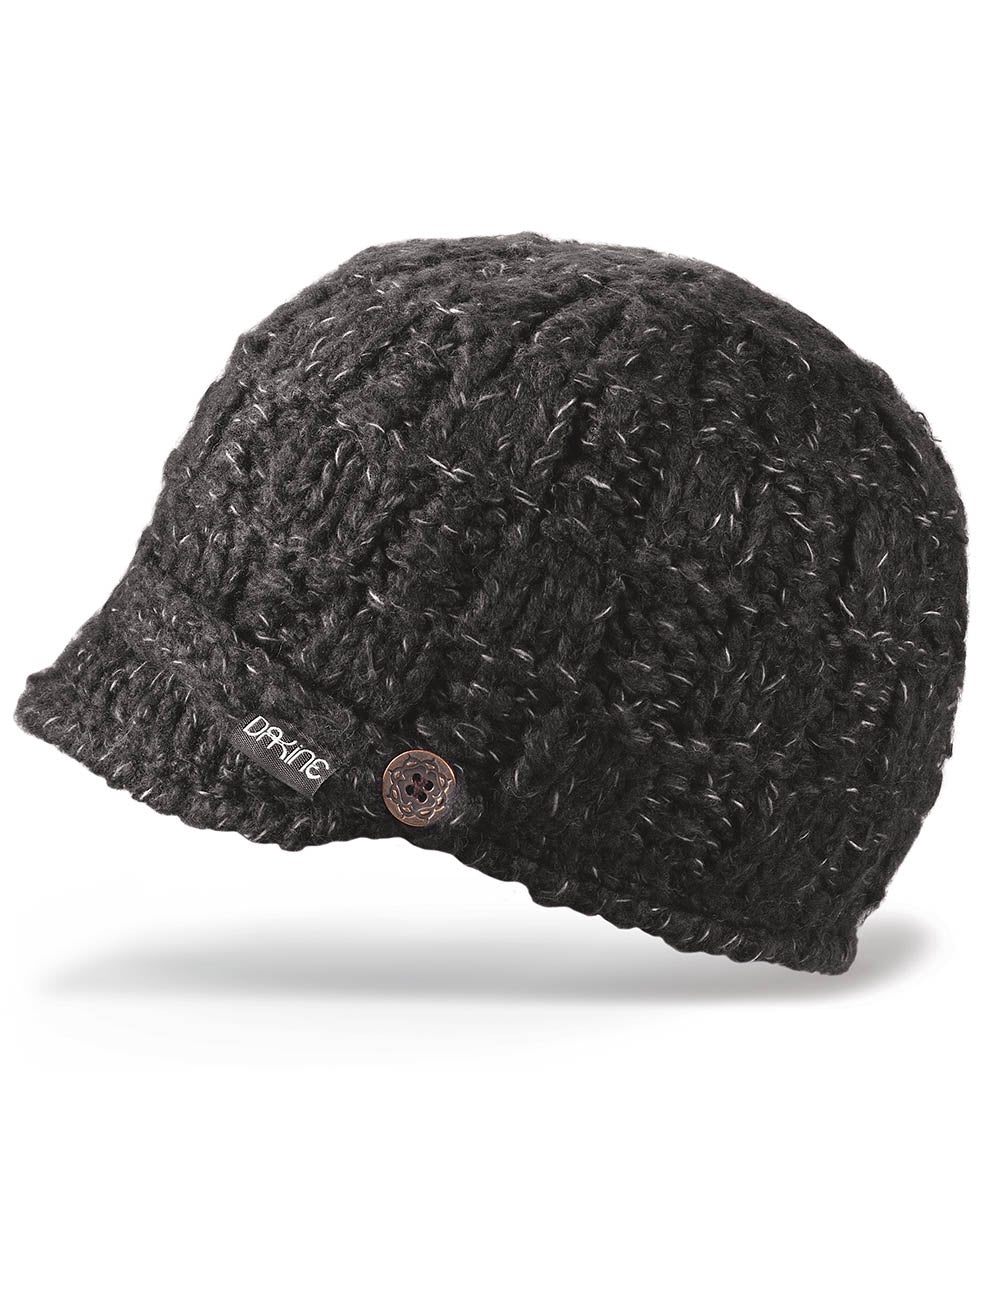 Dakine Women's Audrey Hat - Black